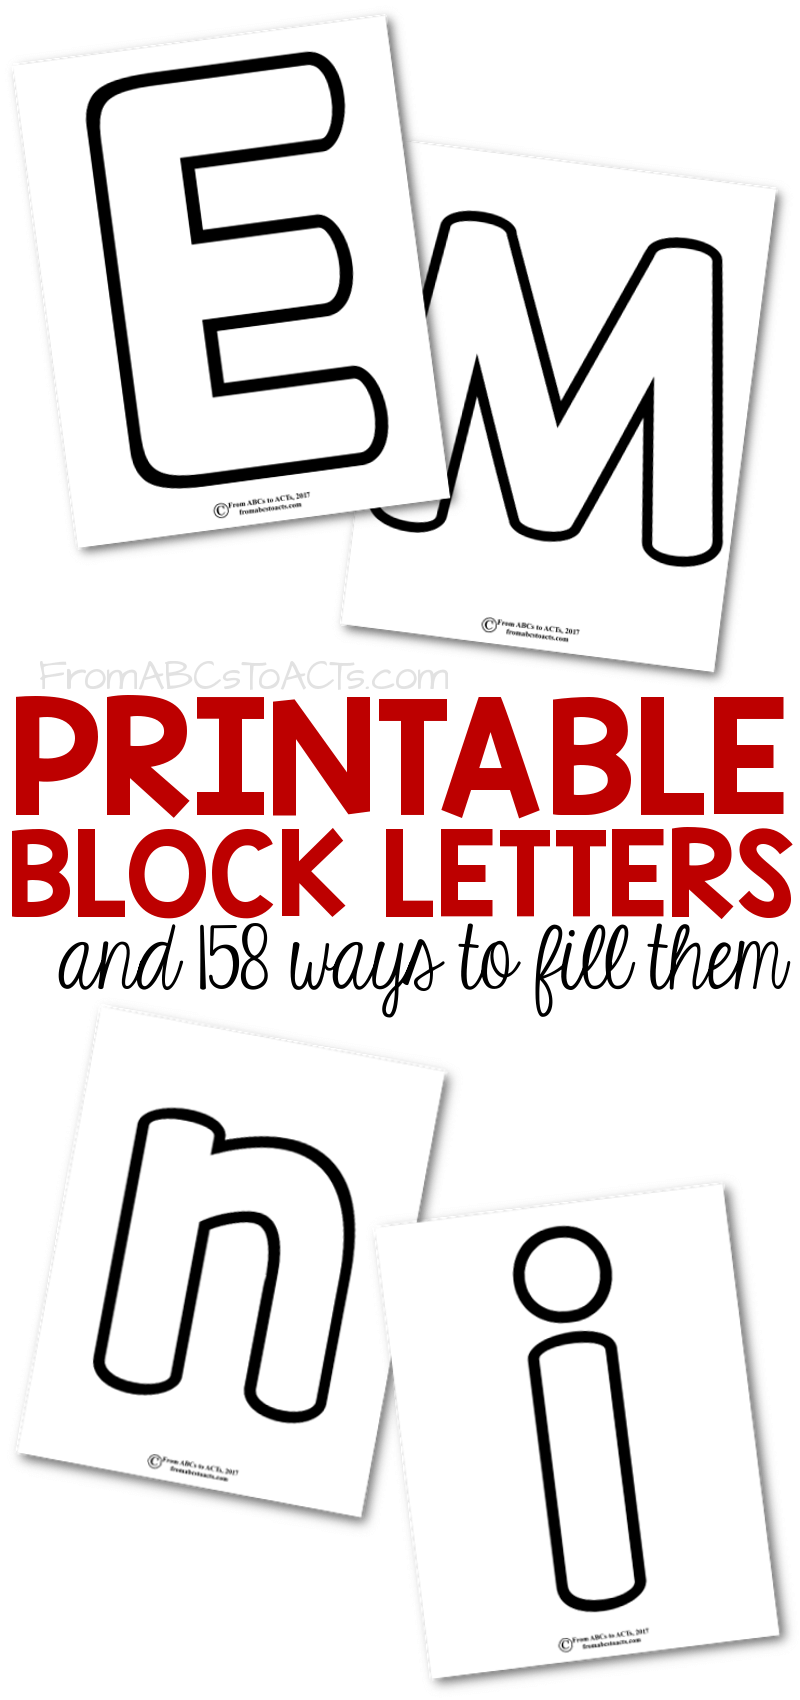 Printable Block Letters And 158 Ways To Fill Them From